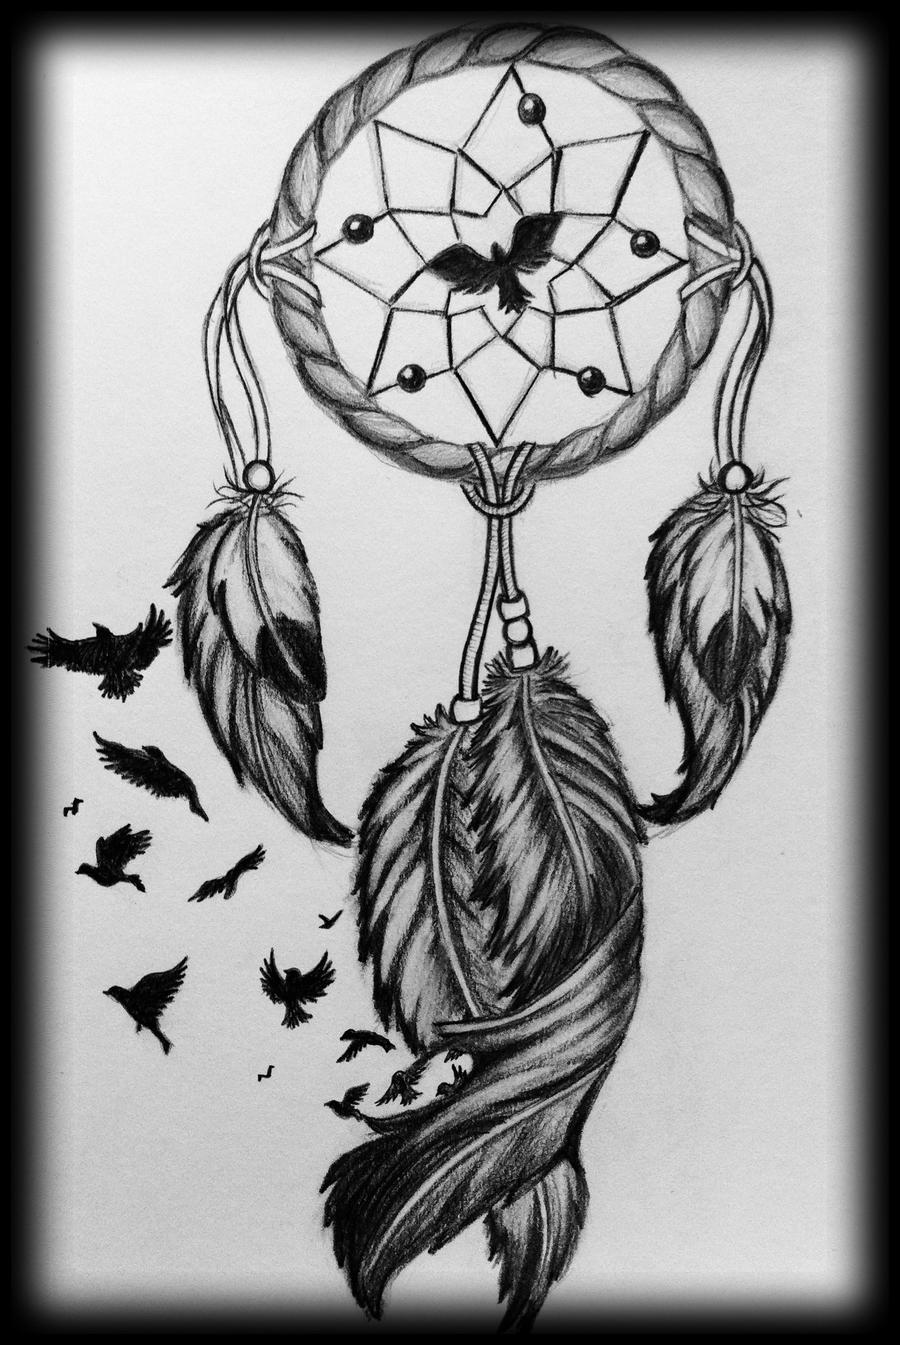 Dreamcatcher by Carlvr on DeviantArt